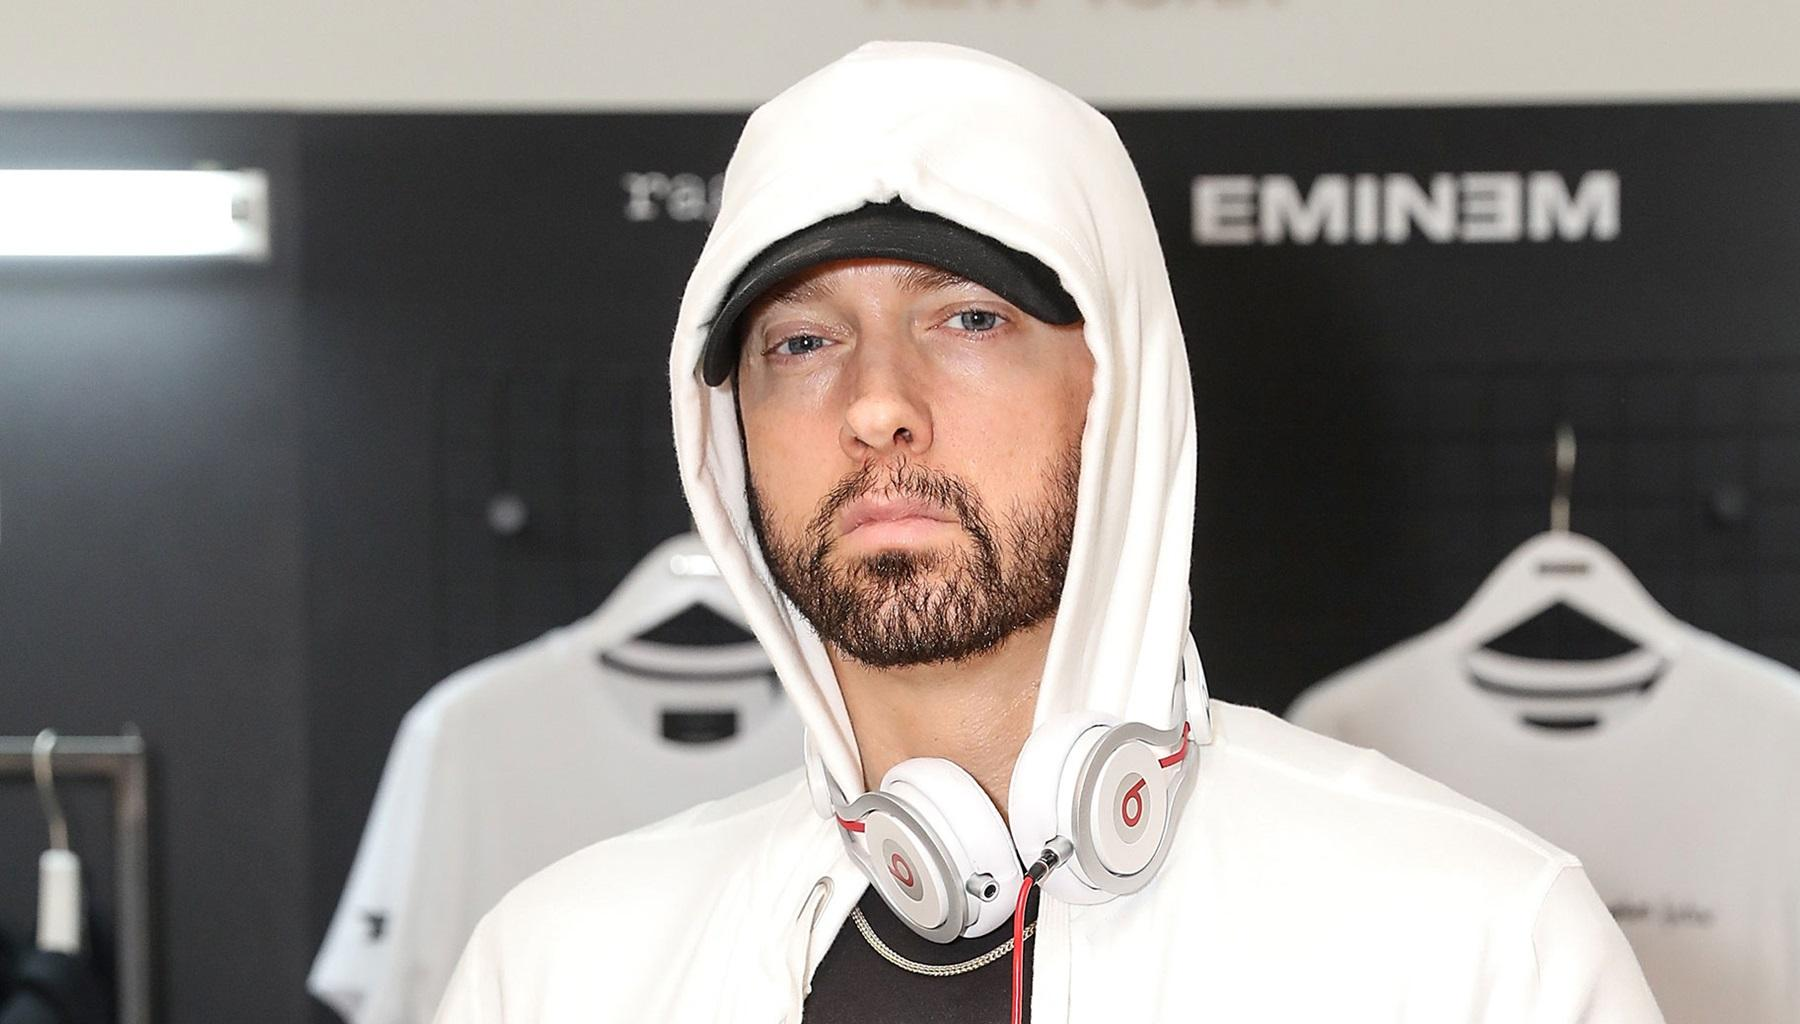 Eminem Dissed This Famous Rapper In New Video -- Will The Feud Last?